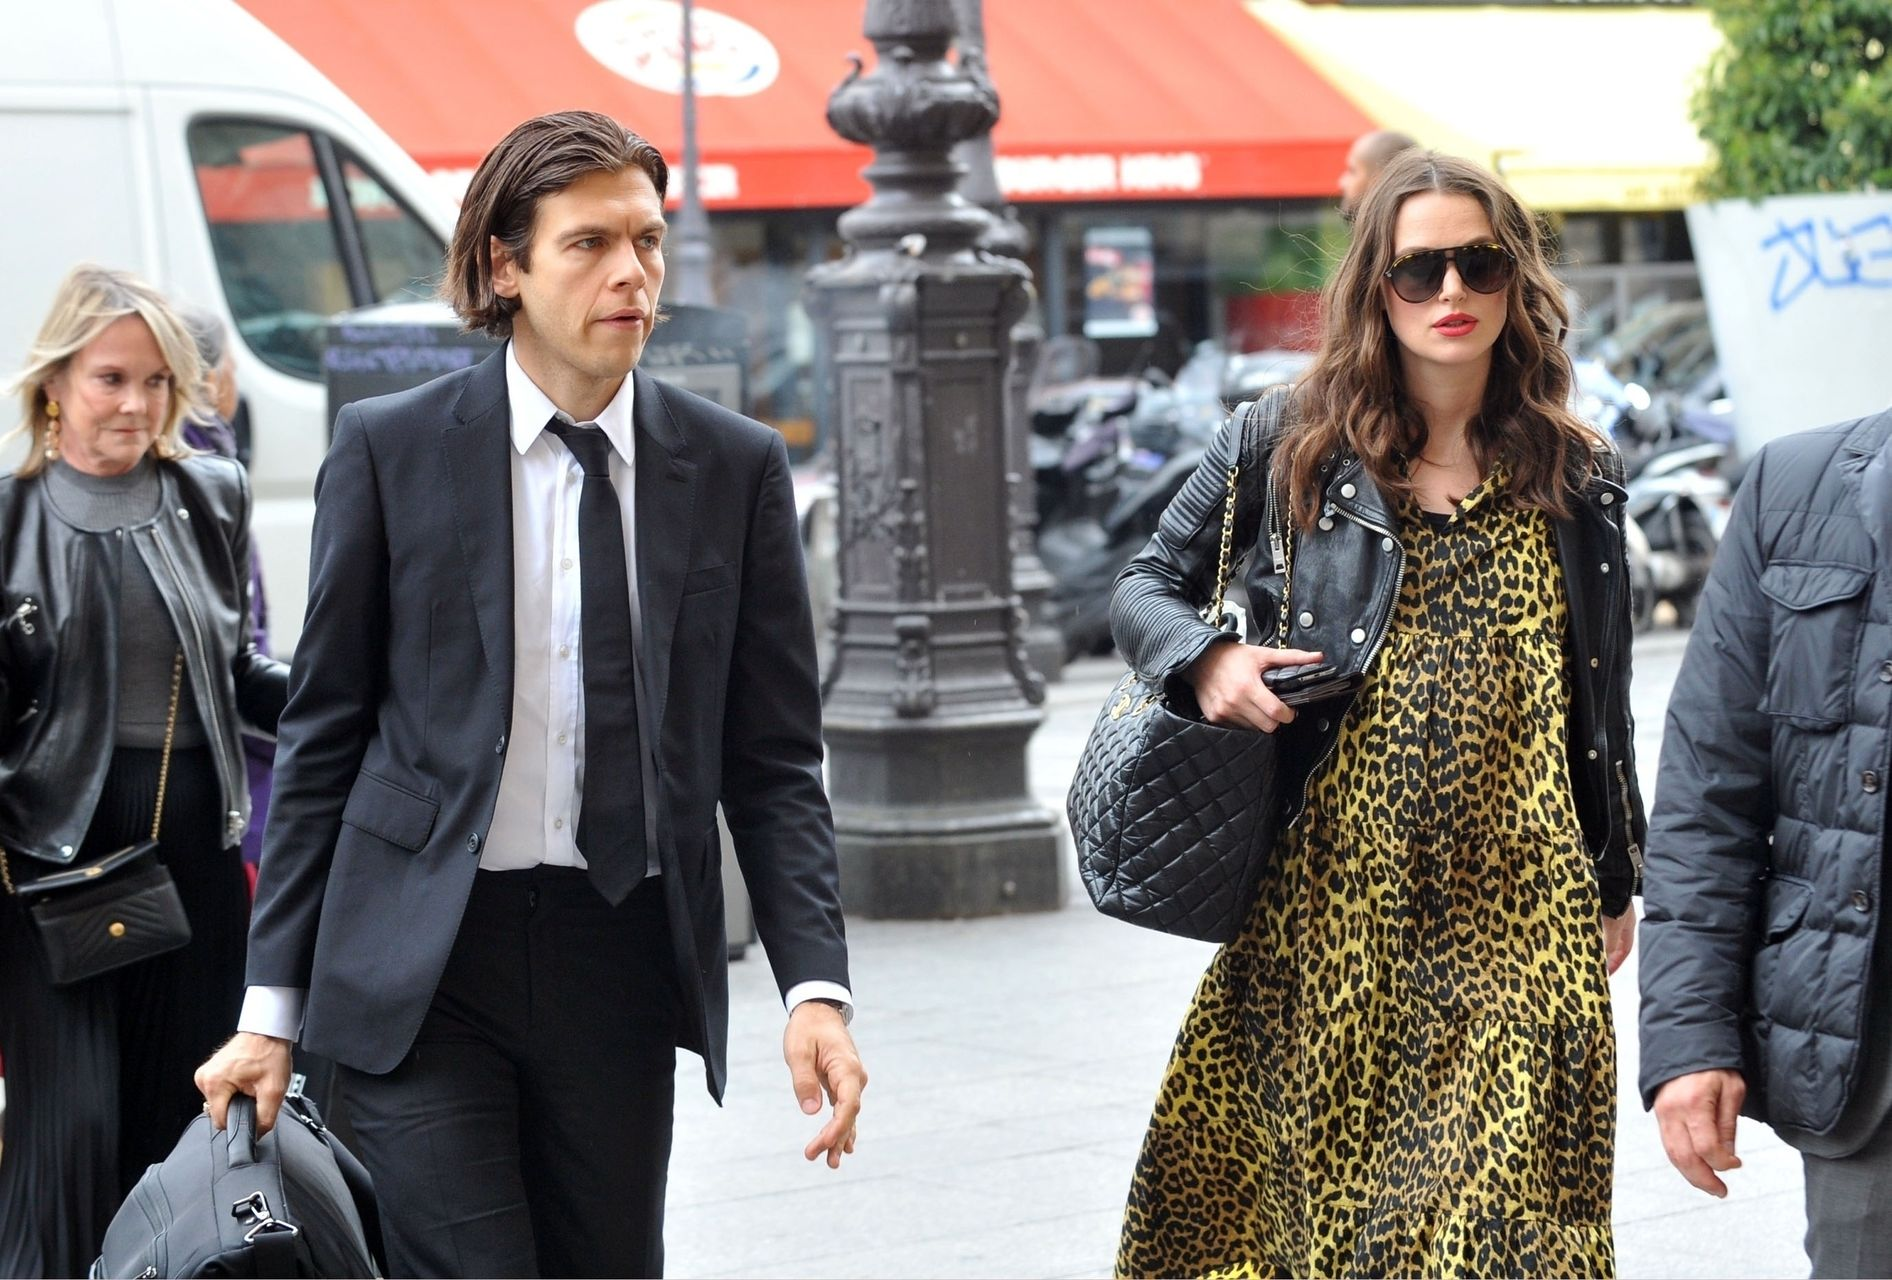 Pregnant British actress Keira Knightley pictured with husband James Righton in Paris.